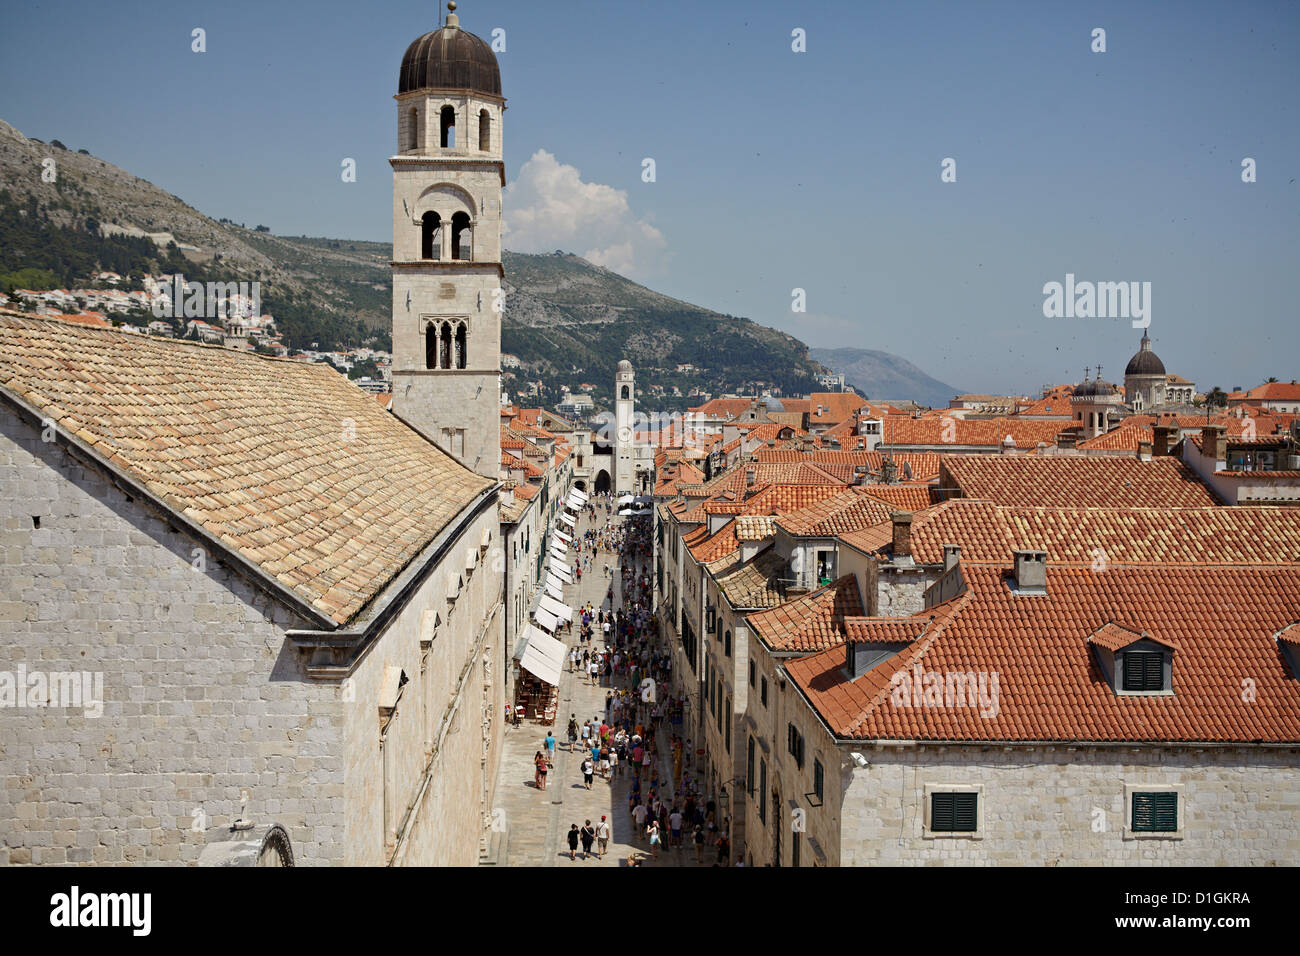 View of the Stradun, the main street inside the Walled City of Dubrovnik, UNESCO World Heritage Site, Croatia, Europe - Stock Image